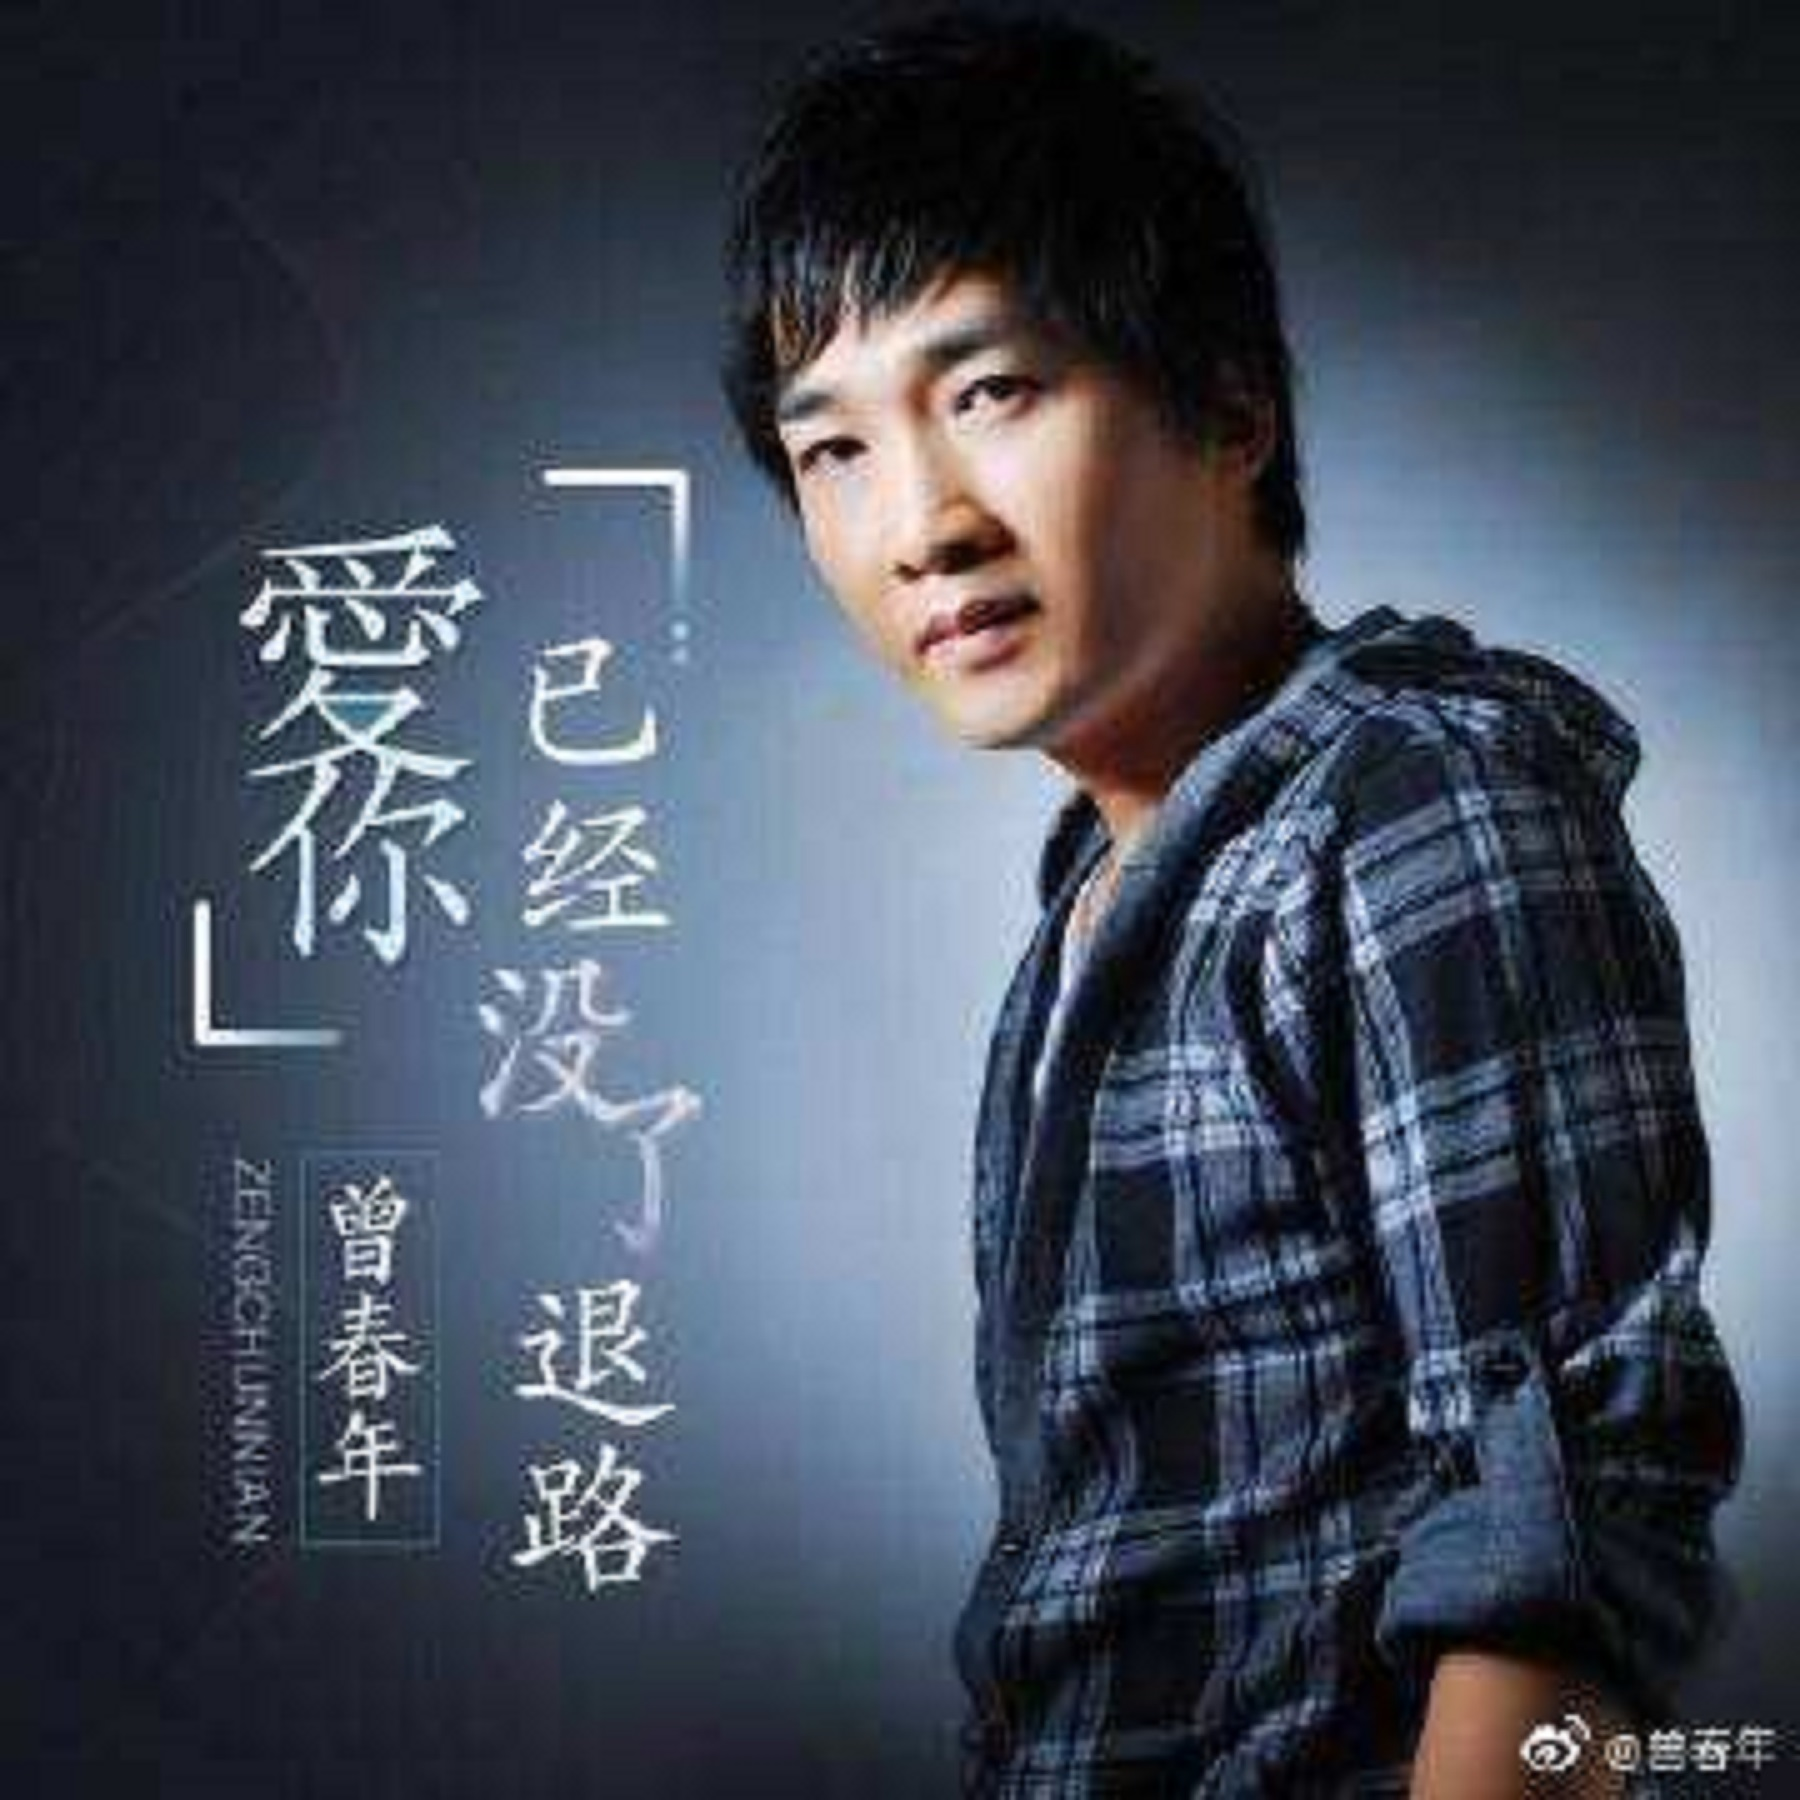 Ai Ni Yi Jing Mei You Le Tui Lu 爱你已经没有了退路 Lyrics 歌詞 With Pinyin By Ceng Chun Nian 曾春年